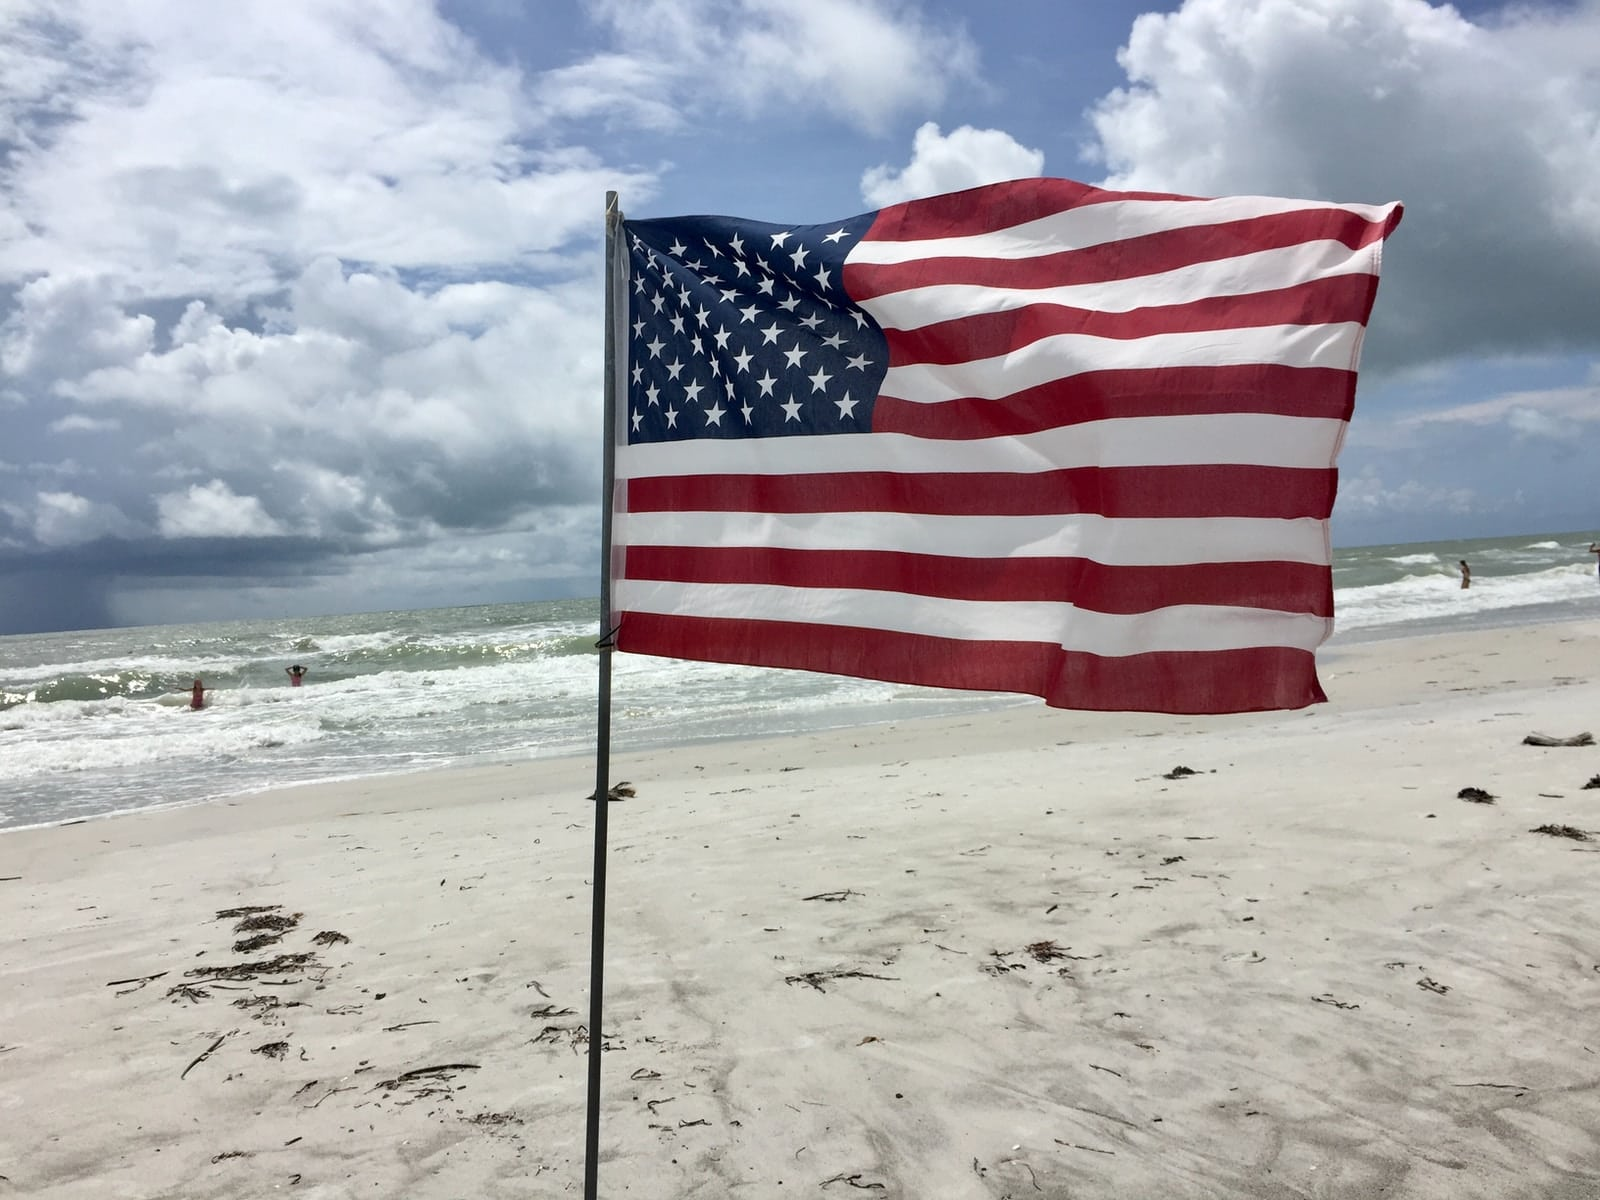 us a flag on beach during daytime